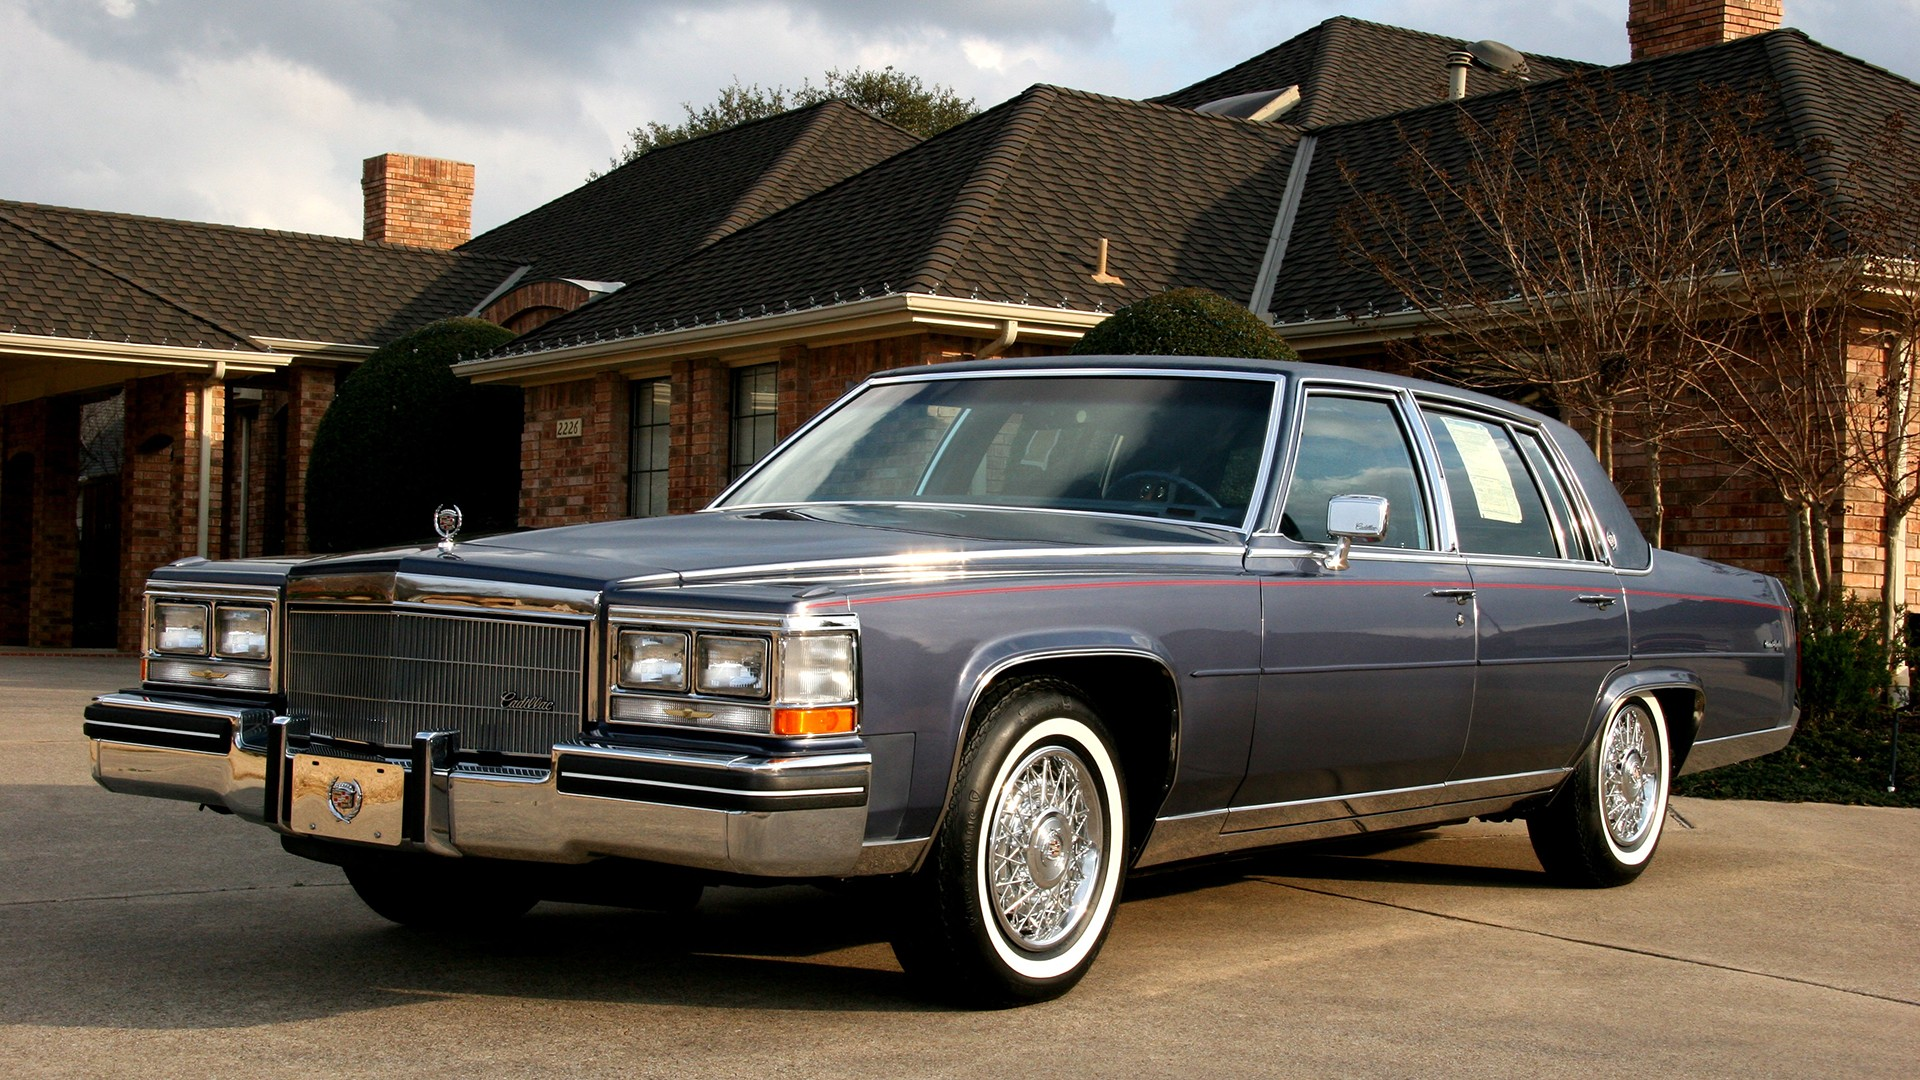 Old Cadillac Cars Hd Wallpapers 1 1984 Cadillac Fleetwood Hd Wallpapers Background